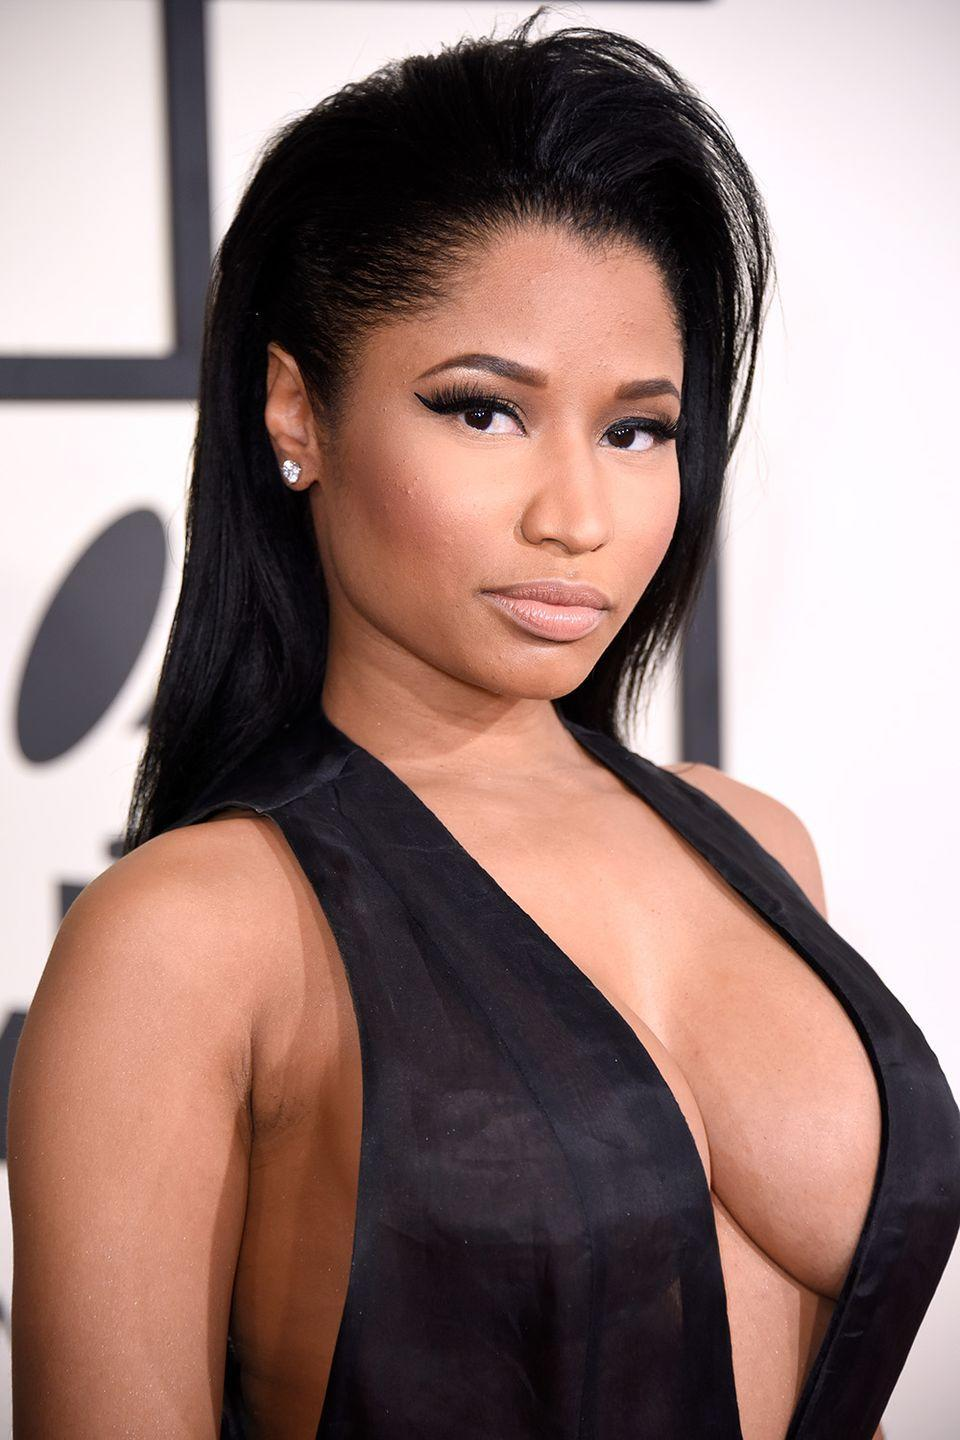 """<p><strong>Born</strong>: Onika Tanya Maraj</p><p>In a 2012 interview with <em><a href=""""https://www.theguardian.com/music/2012/apr/27/nicki-minaj-bigger-balls-than-the-boys"""" rel=""""nofollow noopener"""" target=""""_blank"""" data-ylk=""""slk:The Guardian"""" class=""""link rapid-noclick-resp"""">The Guardian</a></em>, the female rapper explained that she didn't even choose her stage name. """"Somebody changed my name,"""" she <a href=""""https://www.theguardian.com/music/2012/apr/27/nicki-minaj-bigger-balls-than-the-boys"""" rel=""""nofollow noopener"""" target=""""_blank"""" data-ylk=""""slk:told"""" class=""""link rapid-noclick-resp"""">told</a> the publication. """"One of the first production deals I signed, the guy wanted my name to be Minaj and I fought him tooth and nail. But he convinced me. I've always hated it."""" But around close family, the rapper added, she prefers to be called by her given name, Onika. """"My rule is, whatever you were calling me four years ago is what you should be calling me now, because I don't like it when my family or close friends call me Nicki Minaj,"""" she <a href=""""https://www.theguardian.com/music/2012/apr/27/nicki-minaj-bigger-balls-than-the-boys"""" rel=""""nofollow noopener"""" target=""""_blank"""" data-ylk=""""slk:explained"""" class=""""link rapid-noclick-resp"""">explained</a>. """"To me I'm not Nicki Minaj when I'm with them.""""</p>"""